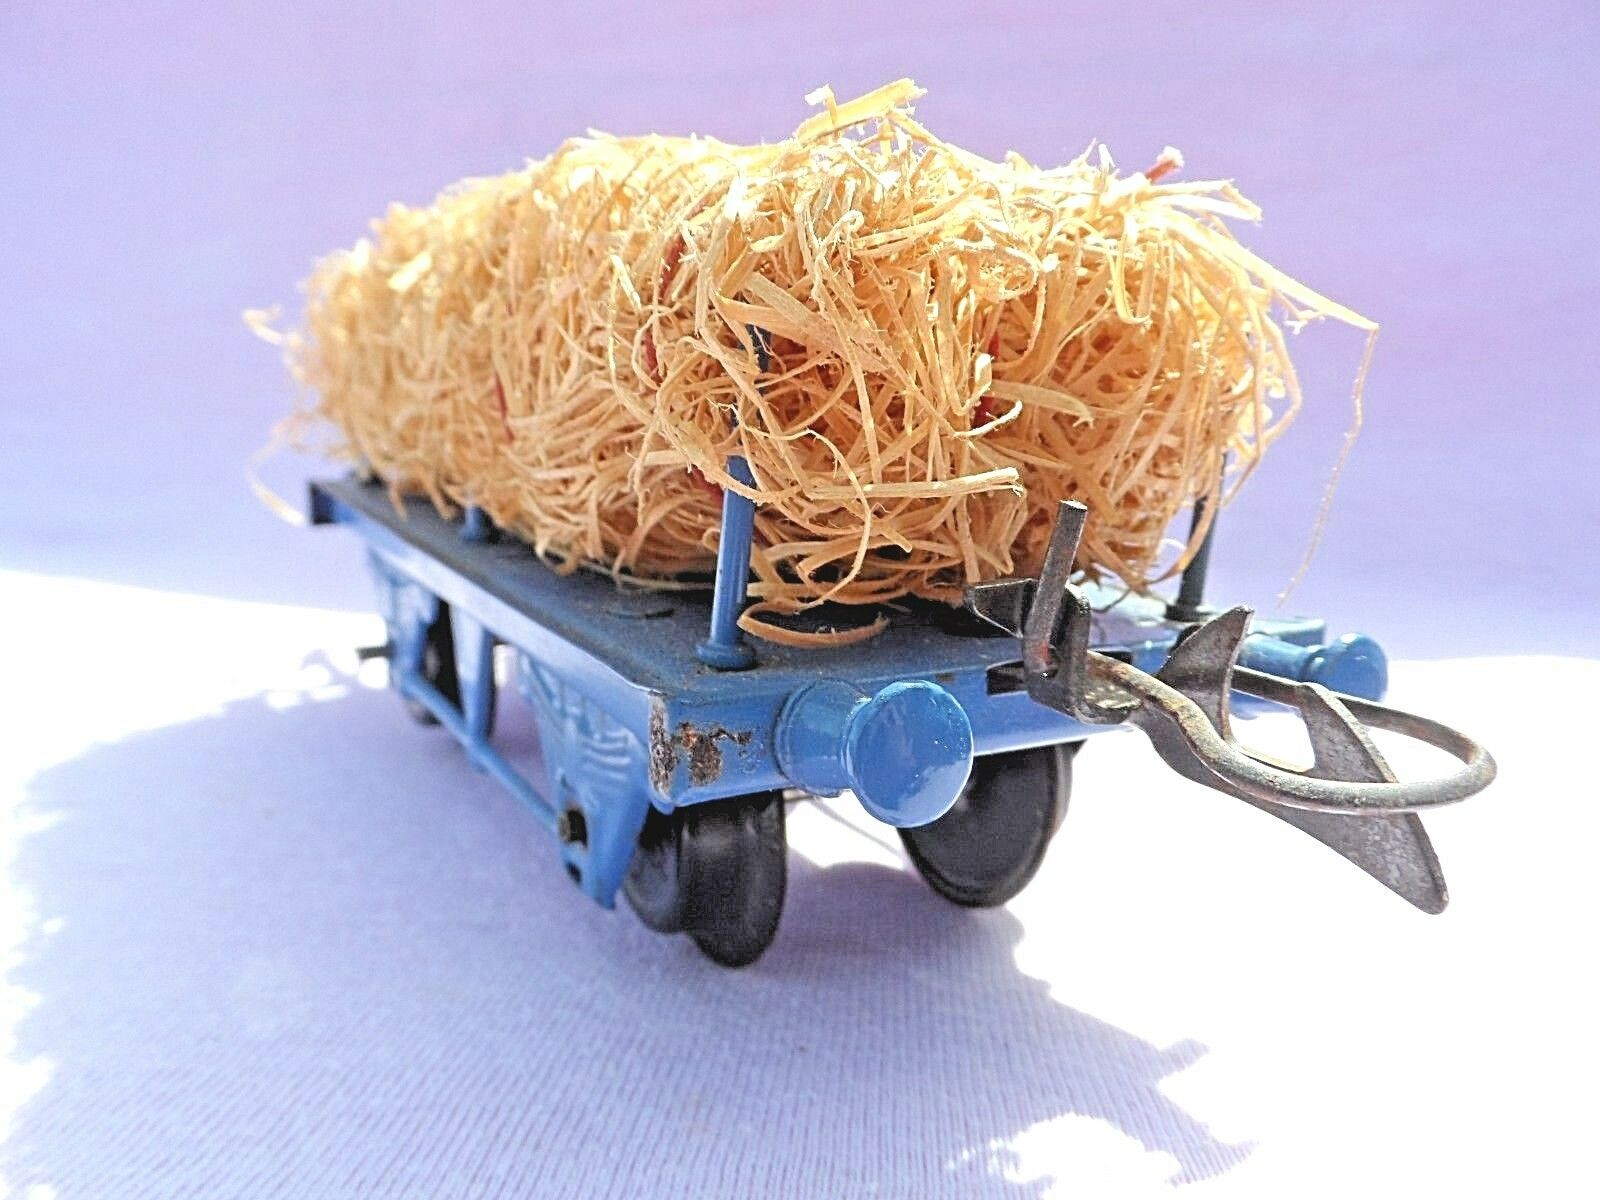 BOXED VINTAGE O GAUGE HORNBY HORNBY HORNBY SERIES RS693 FIBRE WAGON & LOAD EXCELLENT CONDITI 1 923483